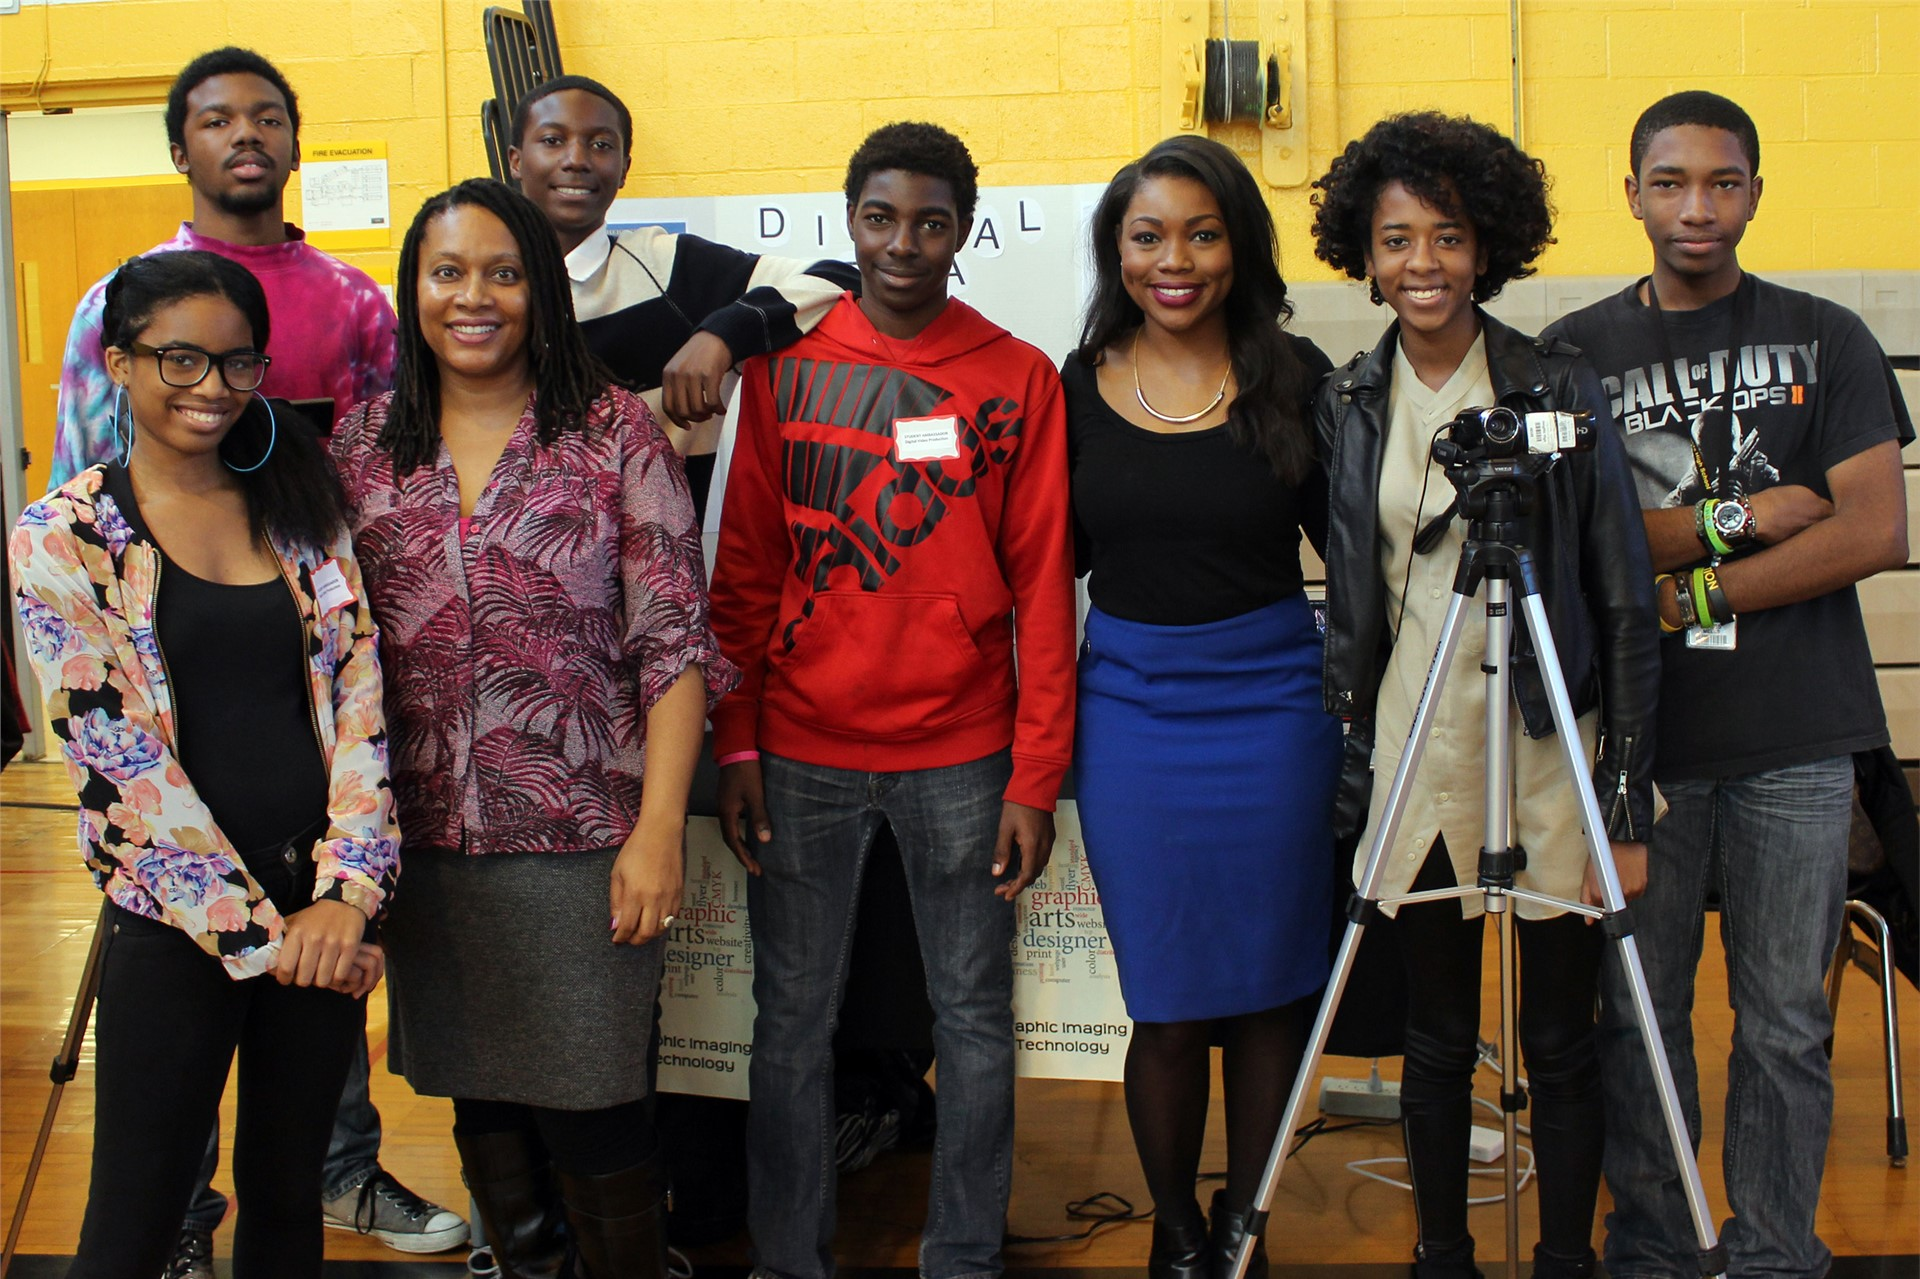 Shanice Dunning with the Digital Video Production class and teacher Cynthia Barnes.